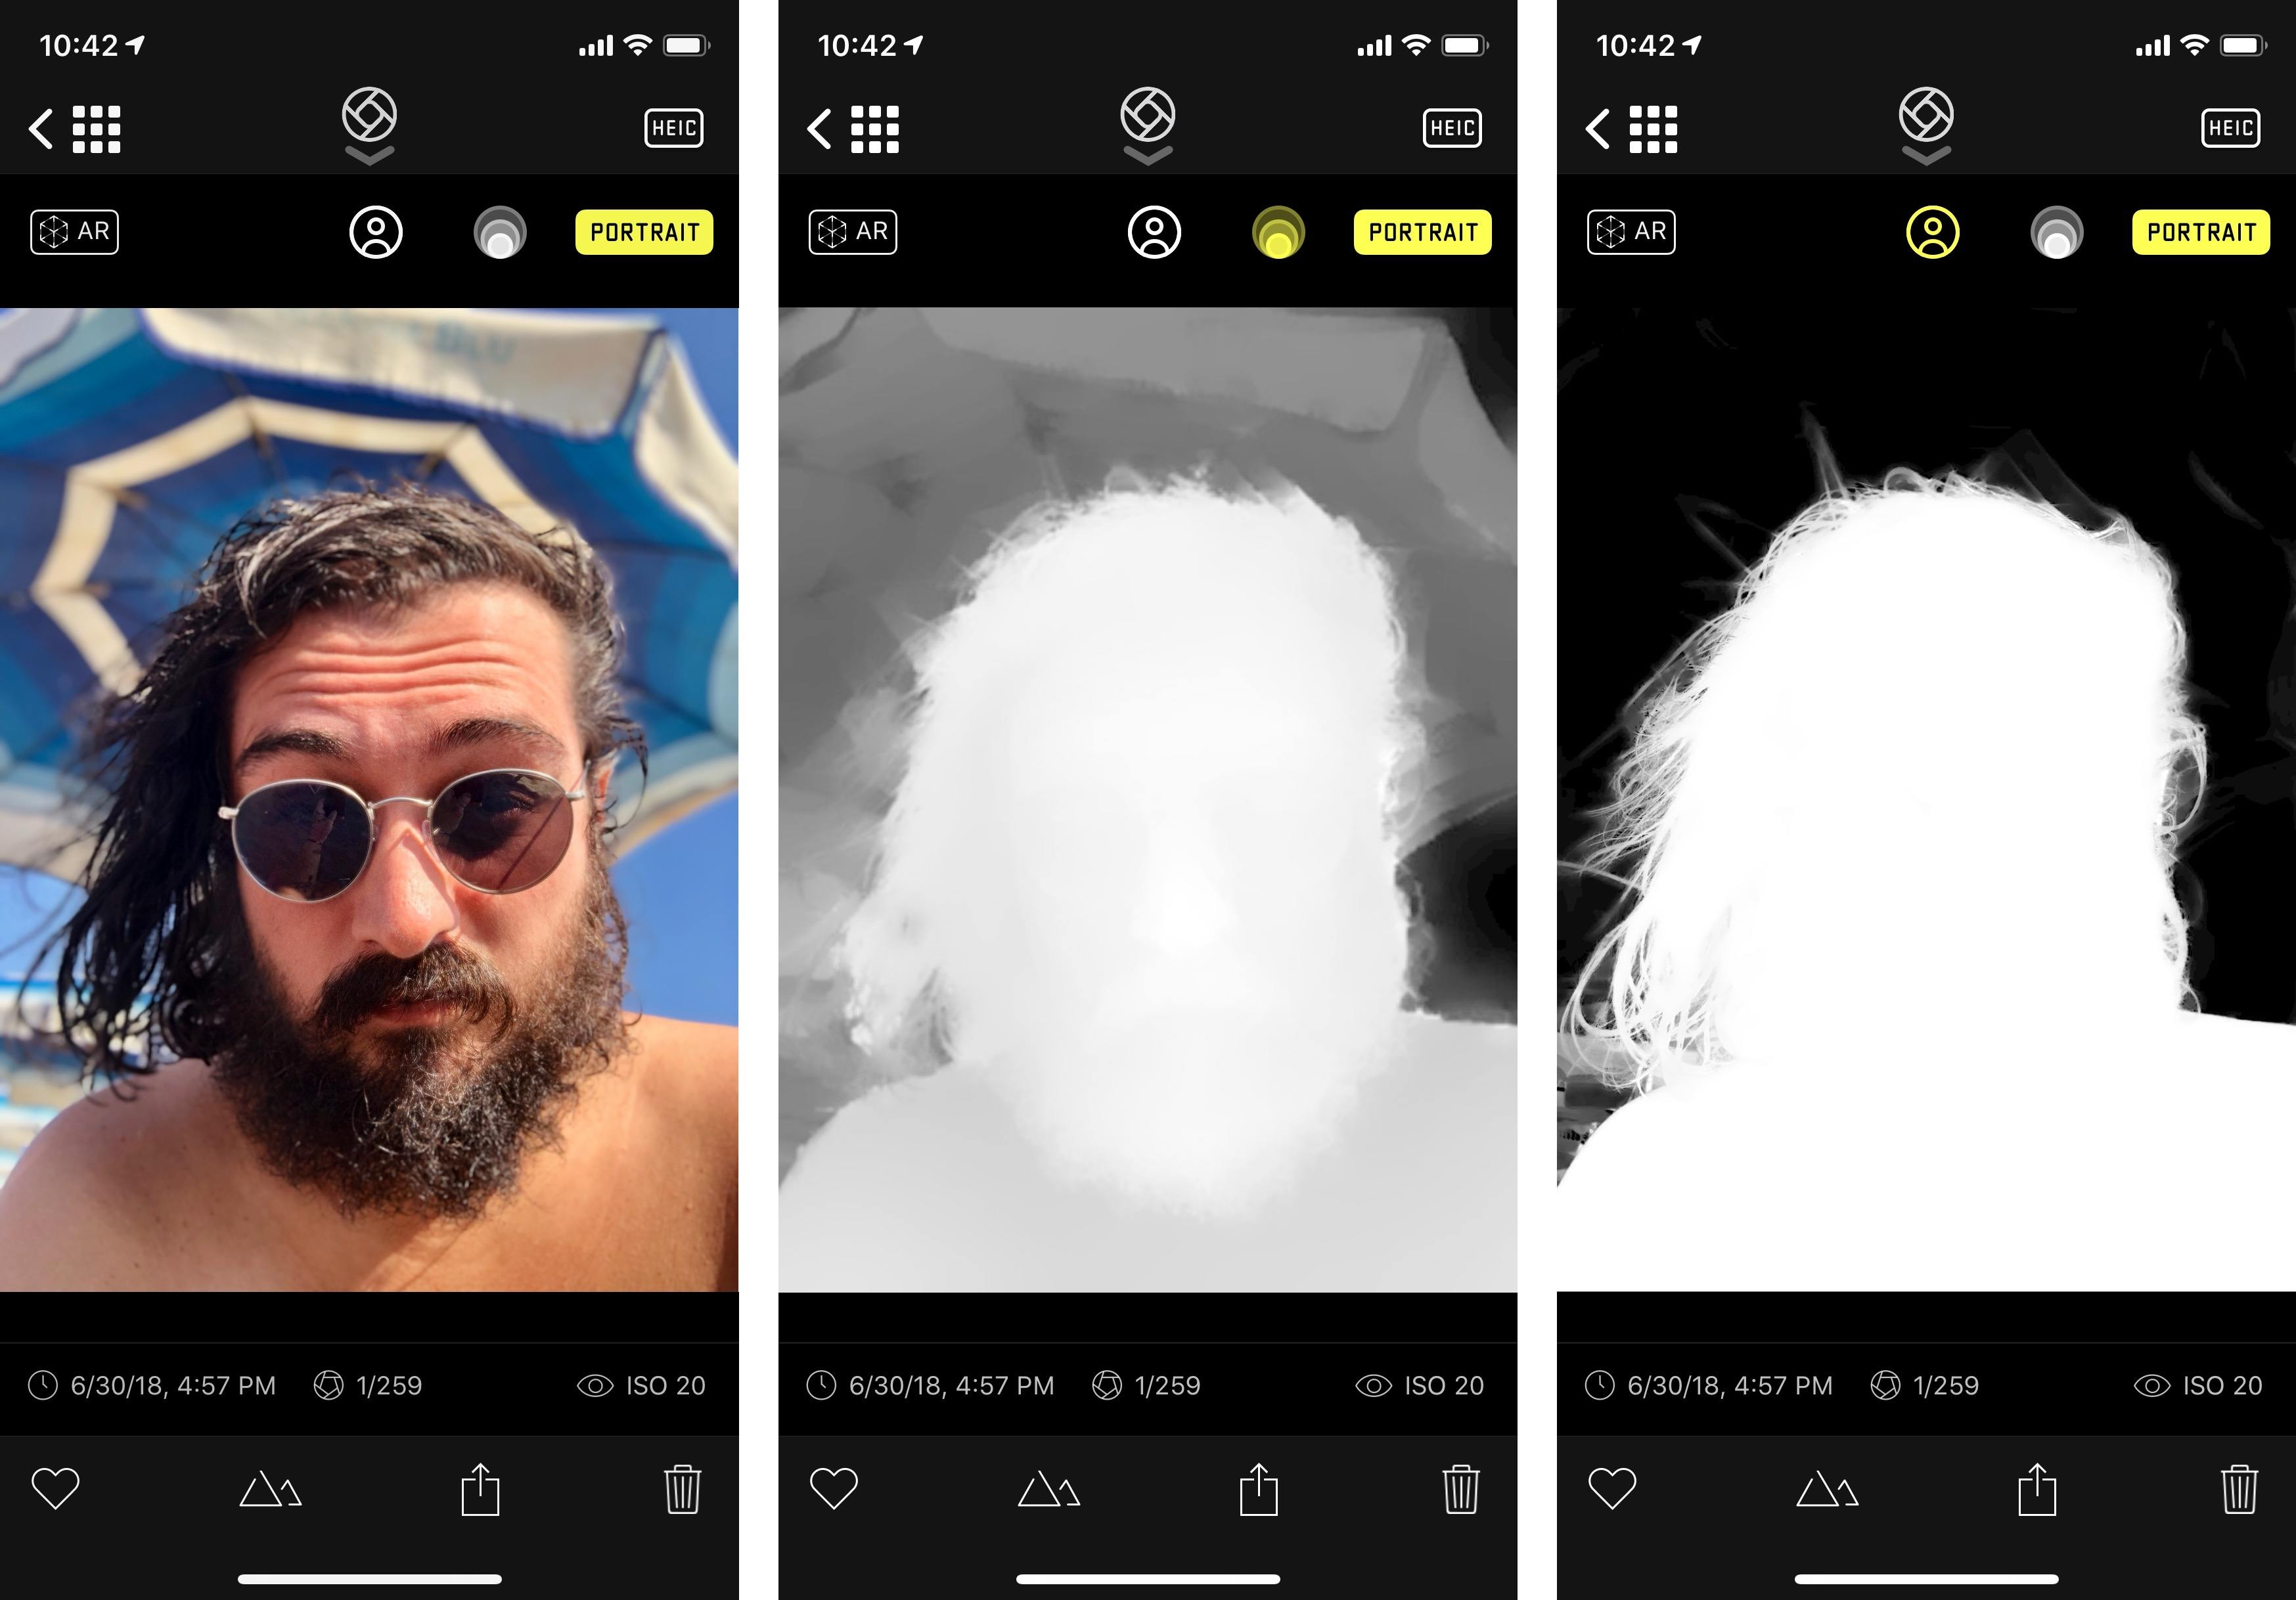 The old depth API for a Portrait shot (center) compared to the new Portrait Segmentation API in iOS 12. Notice the better separation from the background and finer details for hair. You can compare these APIs in an upcoming version of the Halide app.